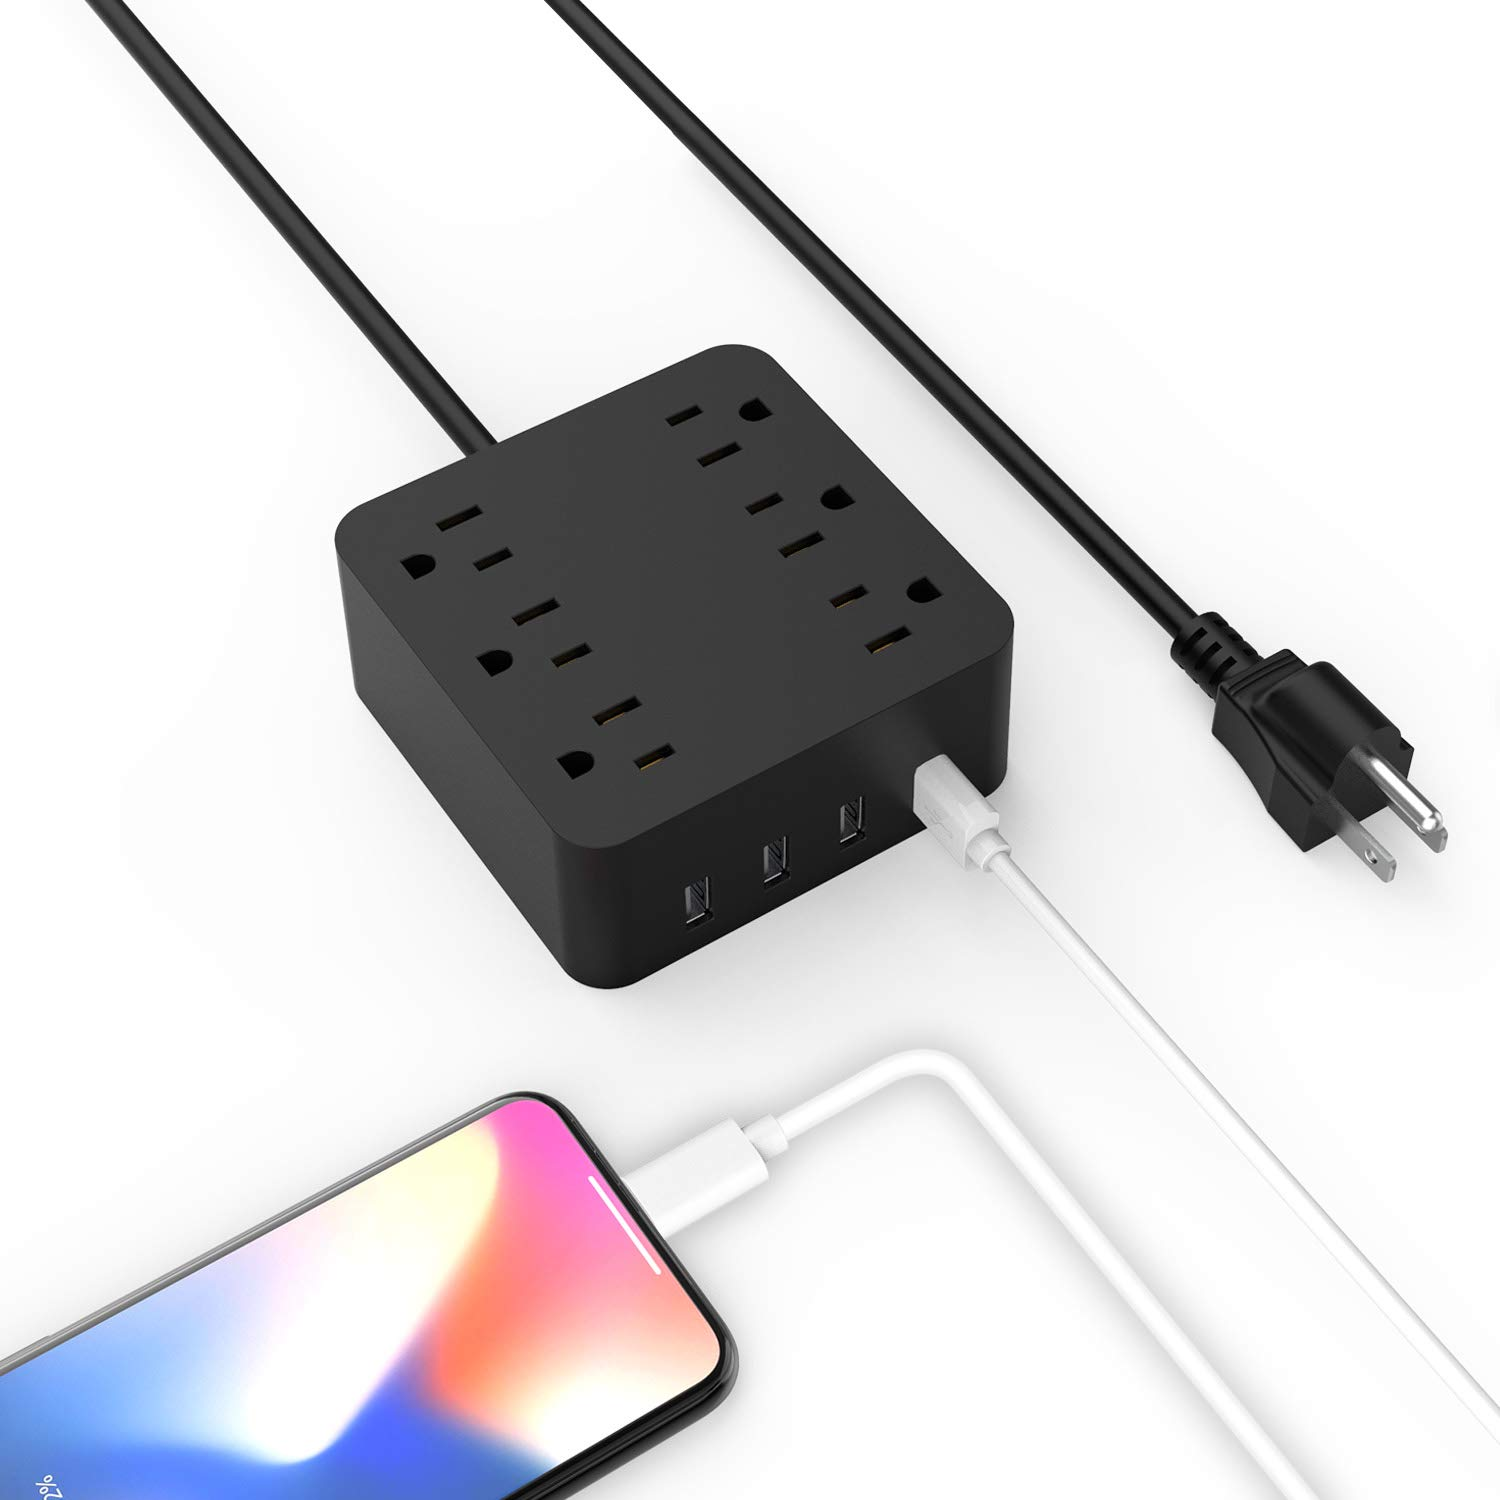 Power Strip - 6 Outlet Surge Protector with 4 USB Ports Fast Charging, 10A 5ft Long Extension Cord, Adjustable Voltage 100-250V for iPhone iPad Home Office Travel Cruise Ship Laptop Computer UL Listed